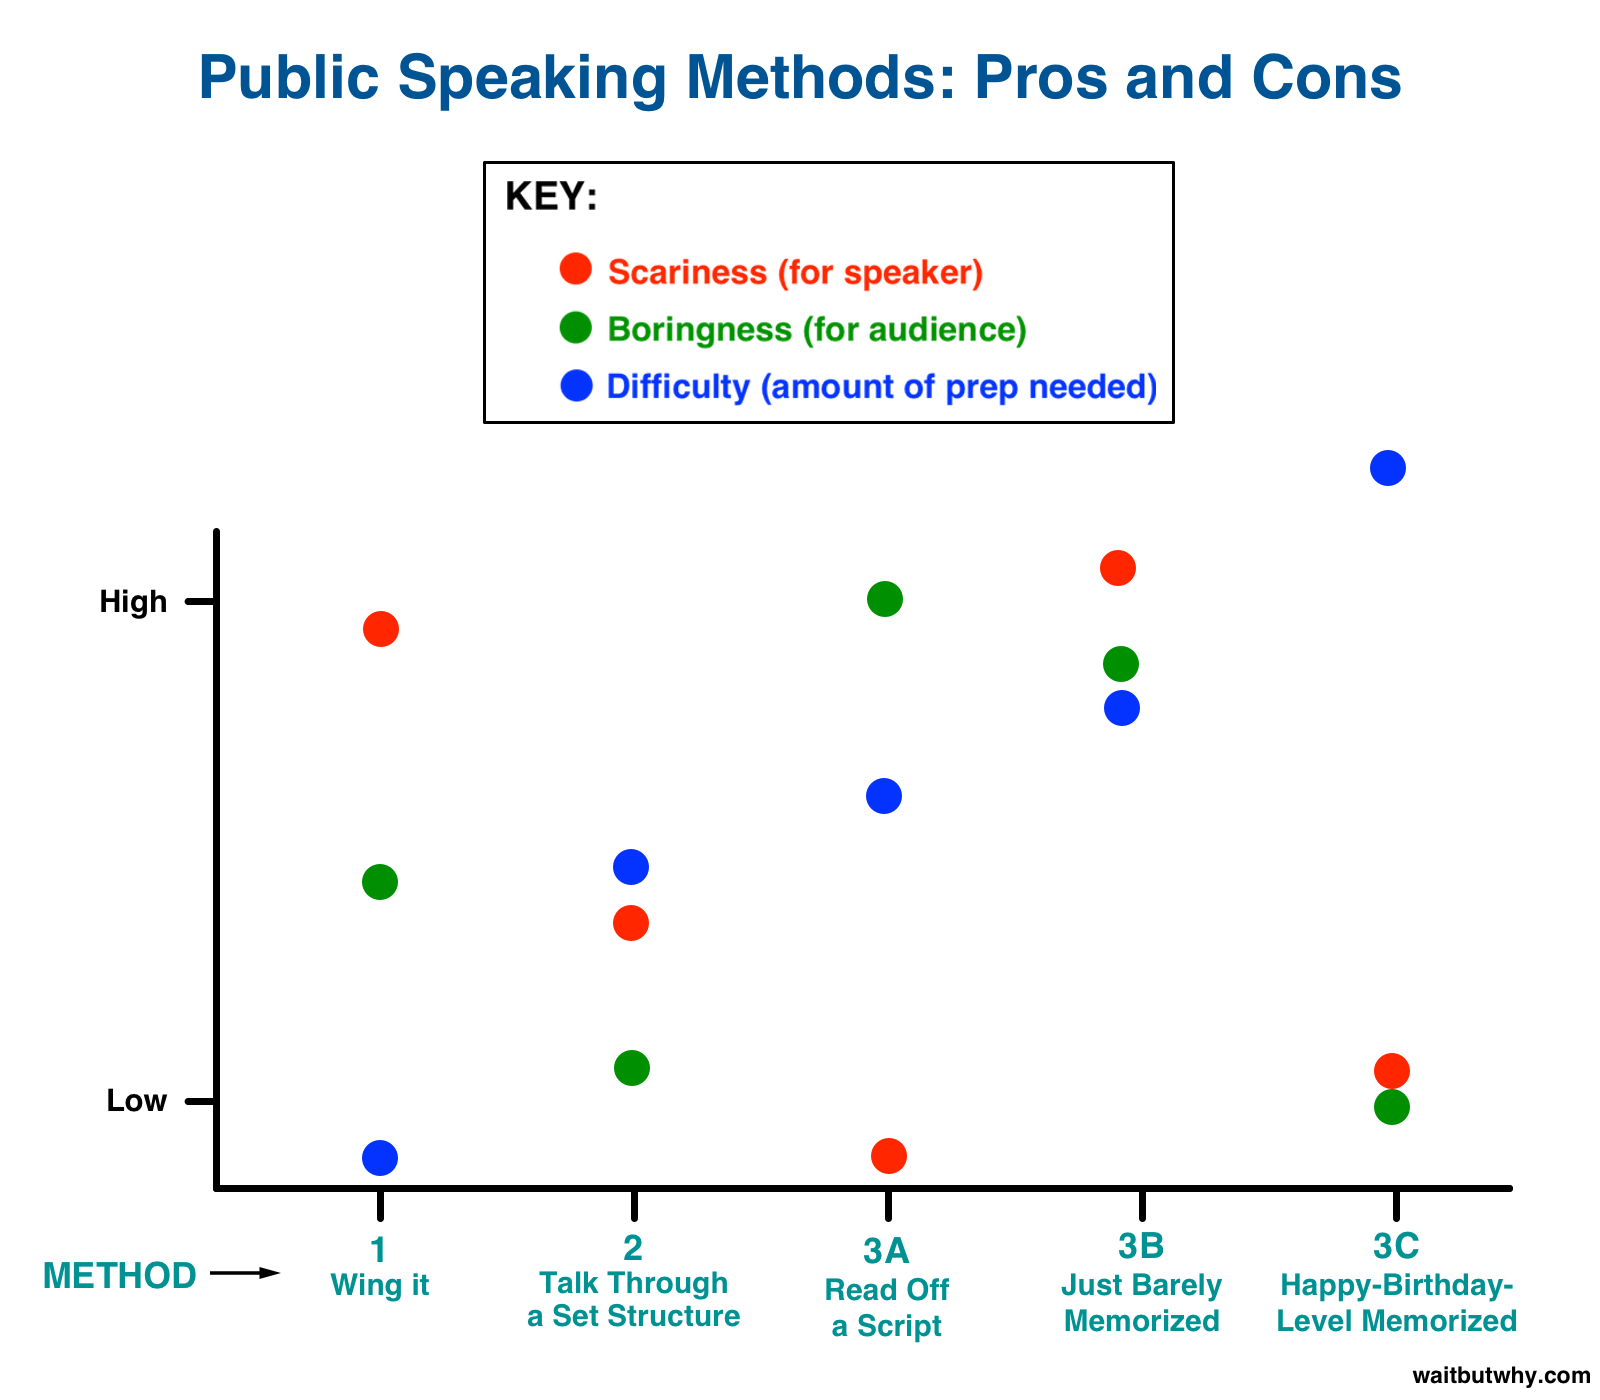 pros and cons of each speaking method plotted on a chart: winging it is the least difficult but most scary, fully memorized is the most difficult and least scary